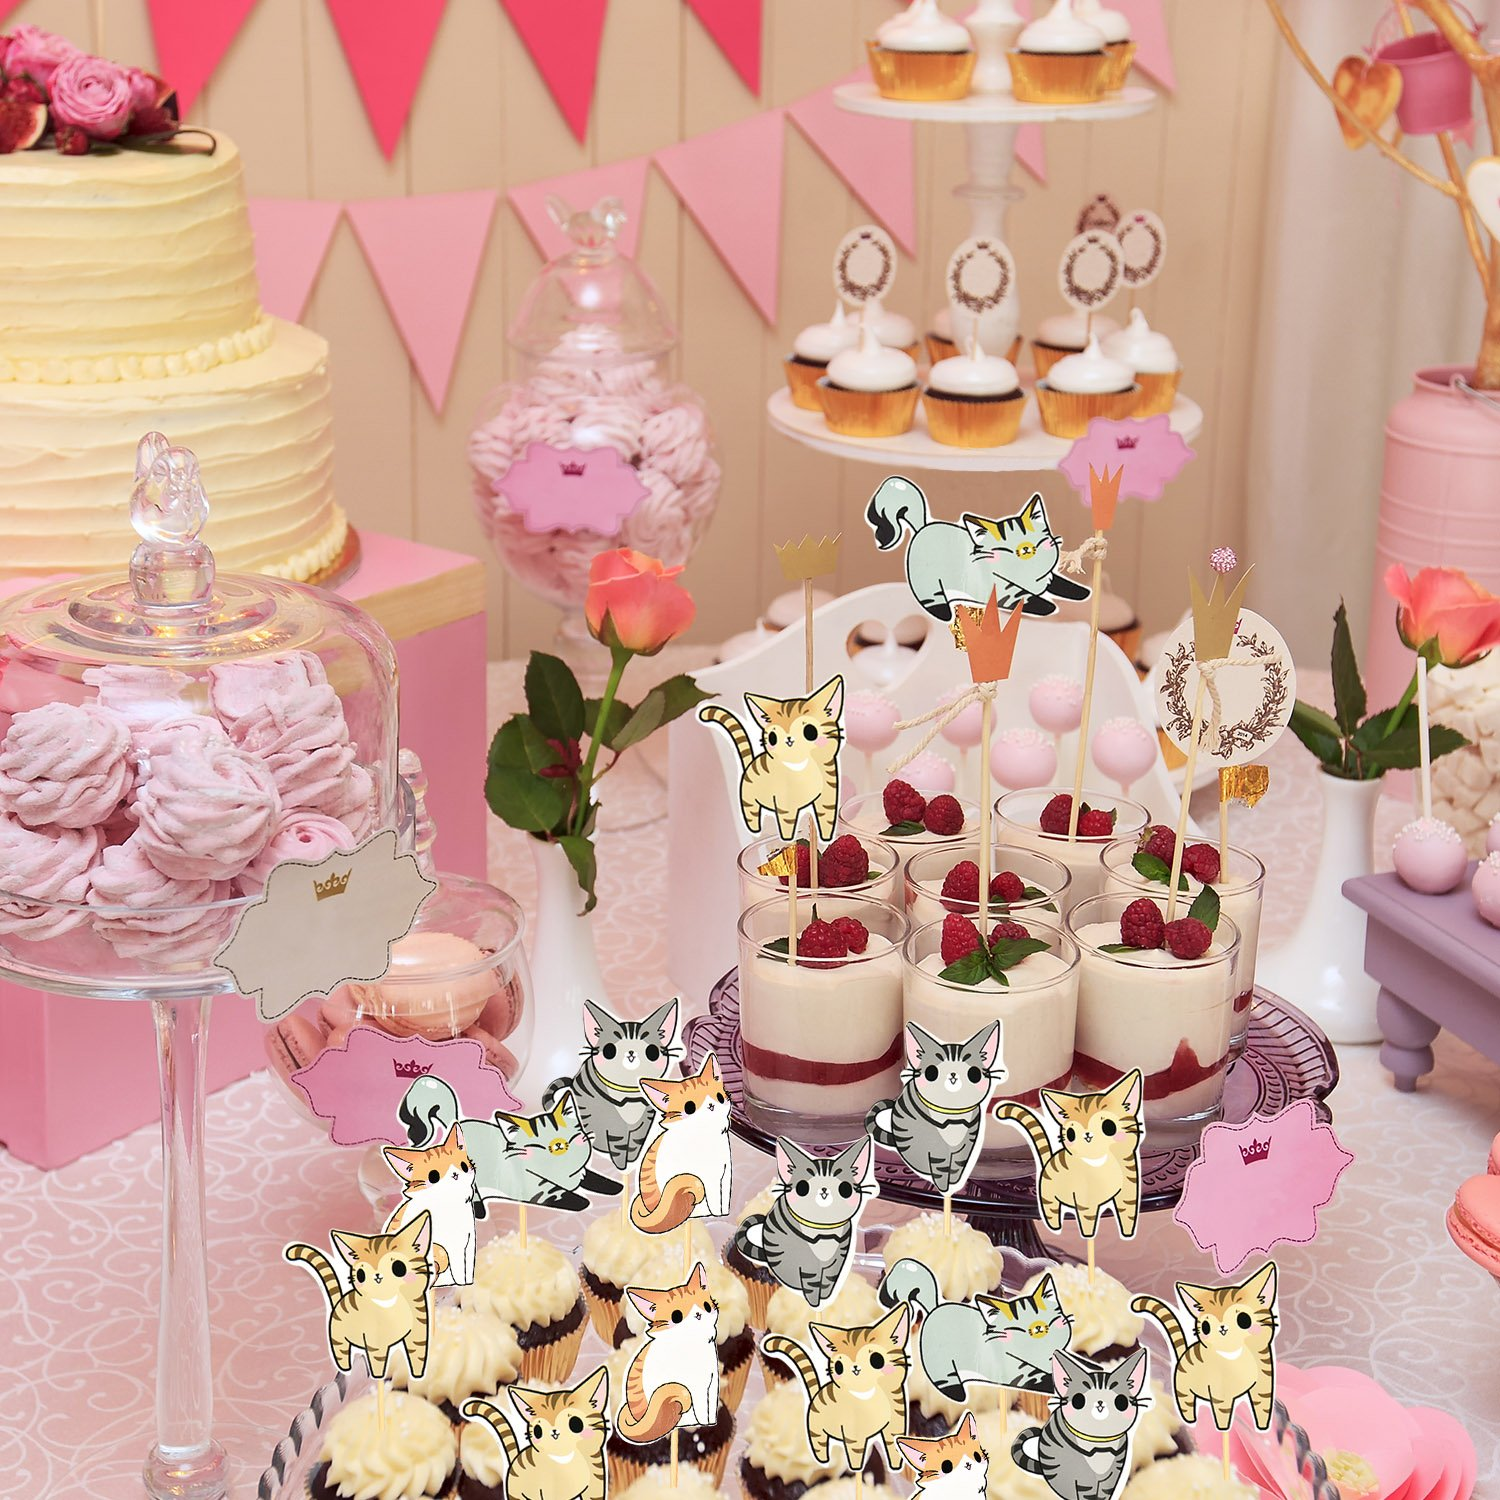 Hestya 72 Pieces Cat Cupcake Toppers Cute Kitten Cake Topper Picks